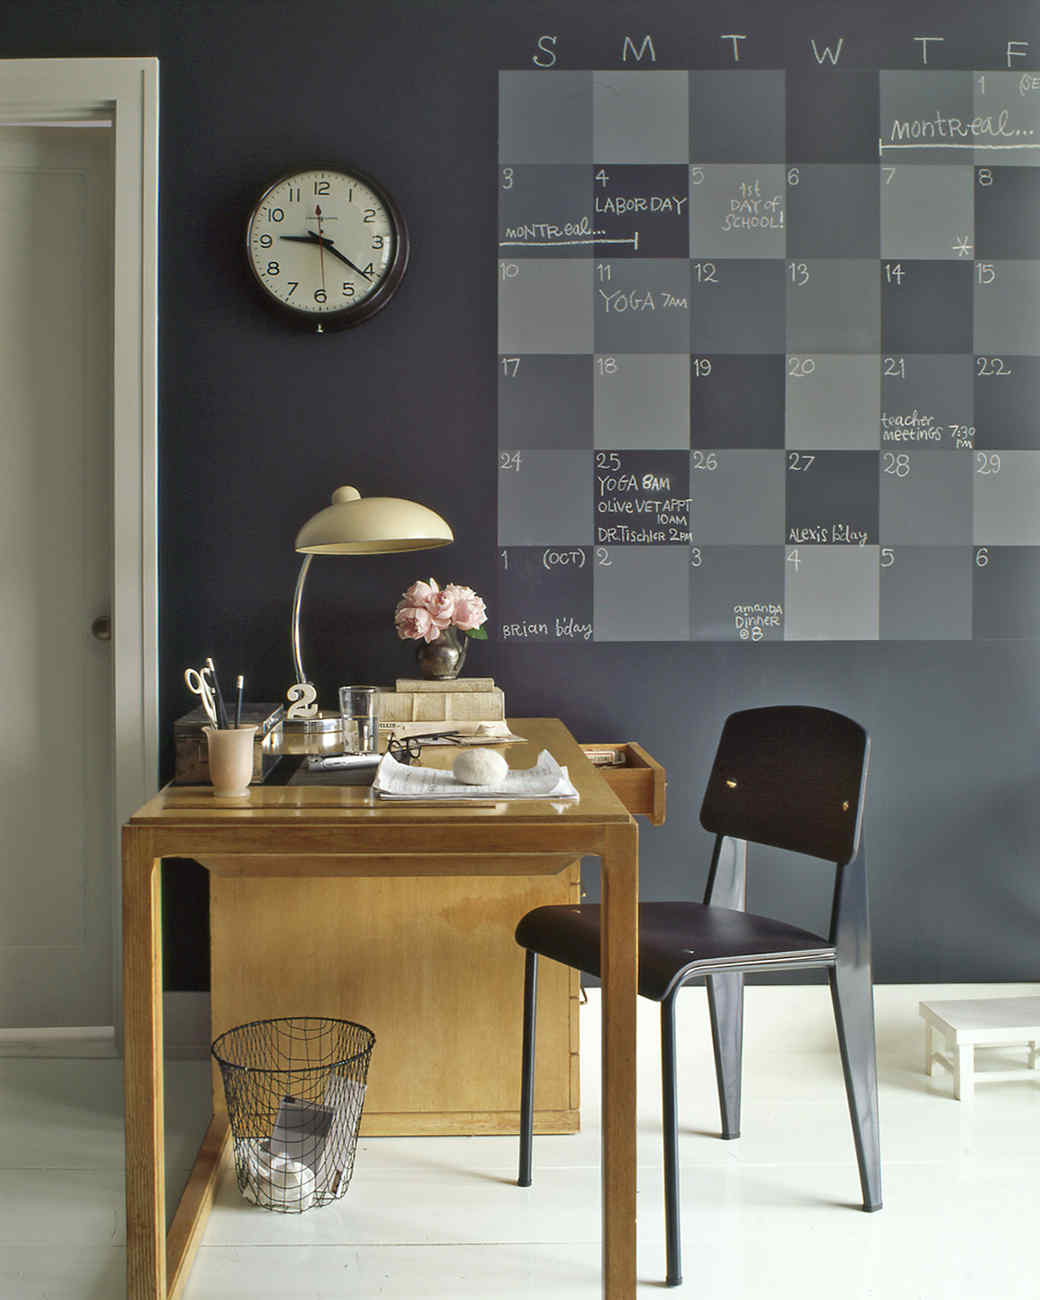 Chalkboard Paint Home Helpers | Martha Stewart on painted doors ideas, zen kitchen design ideas, painted kitchen french country, painting your kitchen ideas, painted cabinets ideas, painted refrigerator ideas, dining room paint ideas, painted hallway ideas, kitchen painting and decorating ideas, painted backsplash ideas, living room wall ideas, kitchen paint color ideas, painted kitchen decorating, painted wood paneling ideas, painted kitchen diy, bedroom wall ideas, orange kitchen paint ideas, painted living room ideas, painted floor ideas,